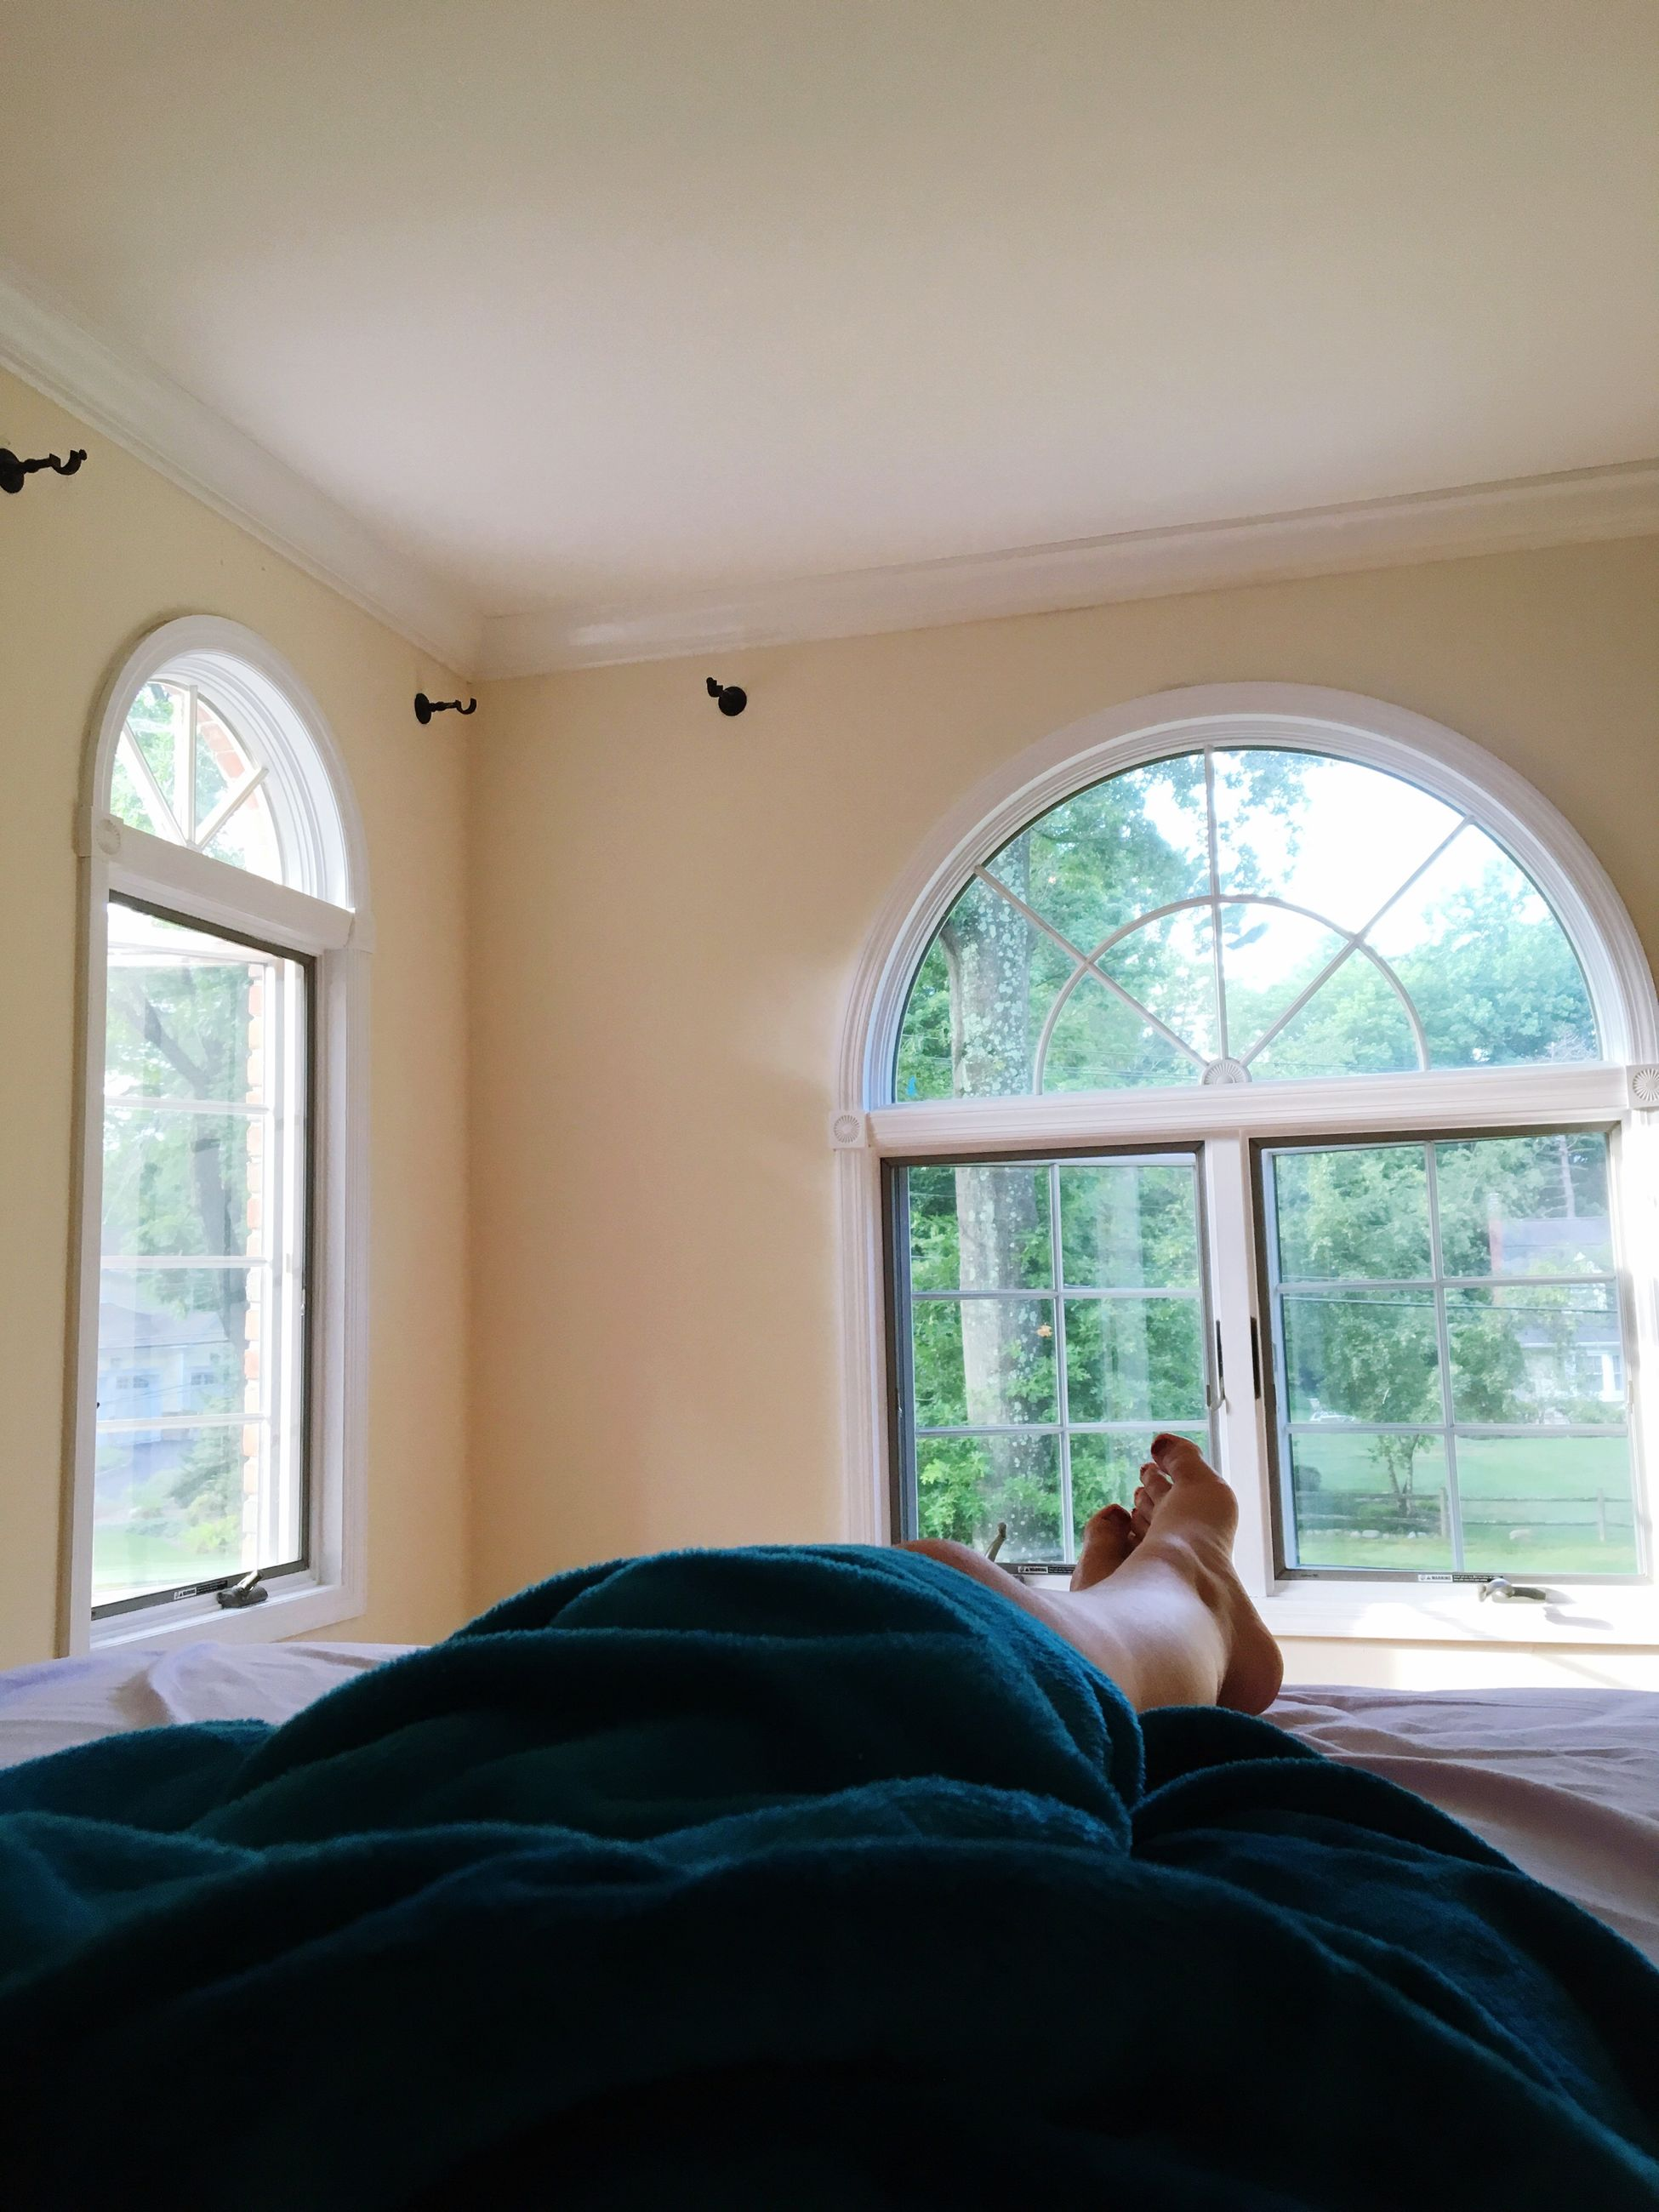 window, indoors, low section, person, relaxation, home interior, comfortable, barefoot, hanging, resting, domestic life, day, lying down, apartment, human skin, personal perspective